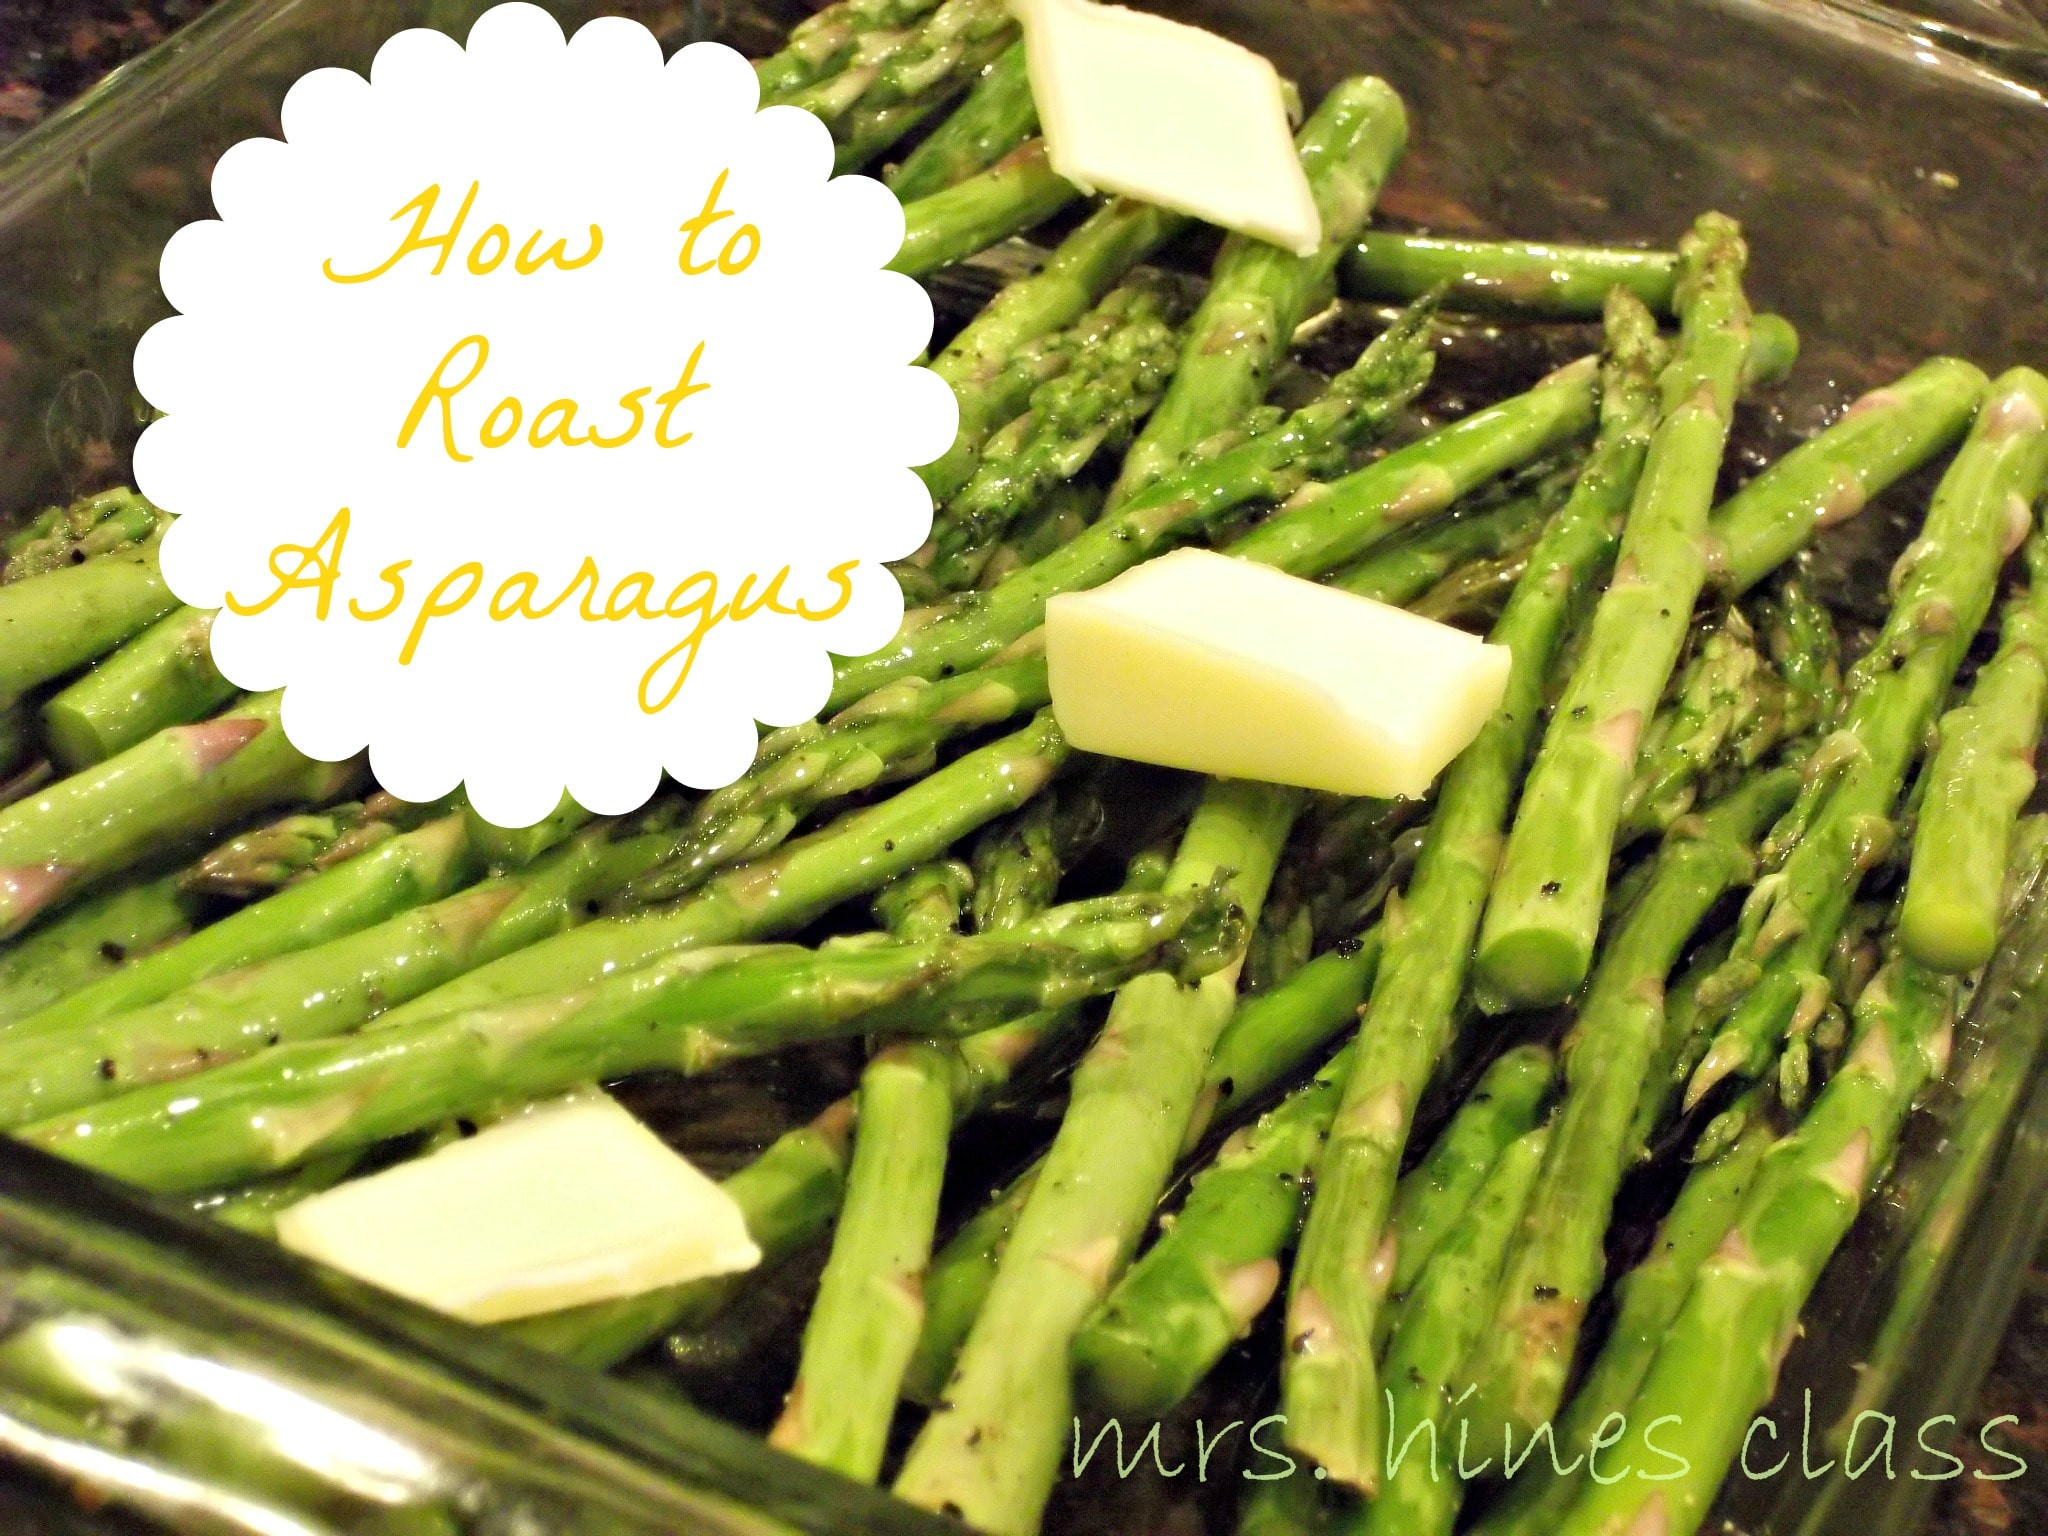 Asparagus Side Dishes  the perfect side dish roasted asparagus Mrs Hines Class